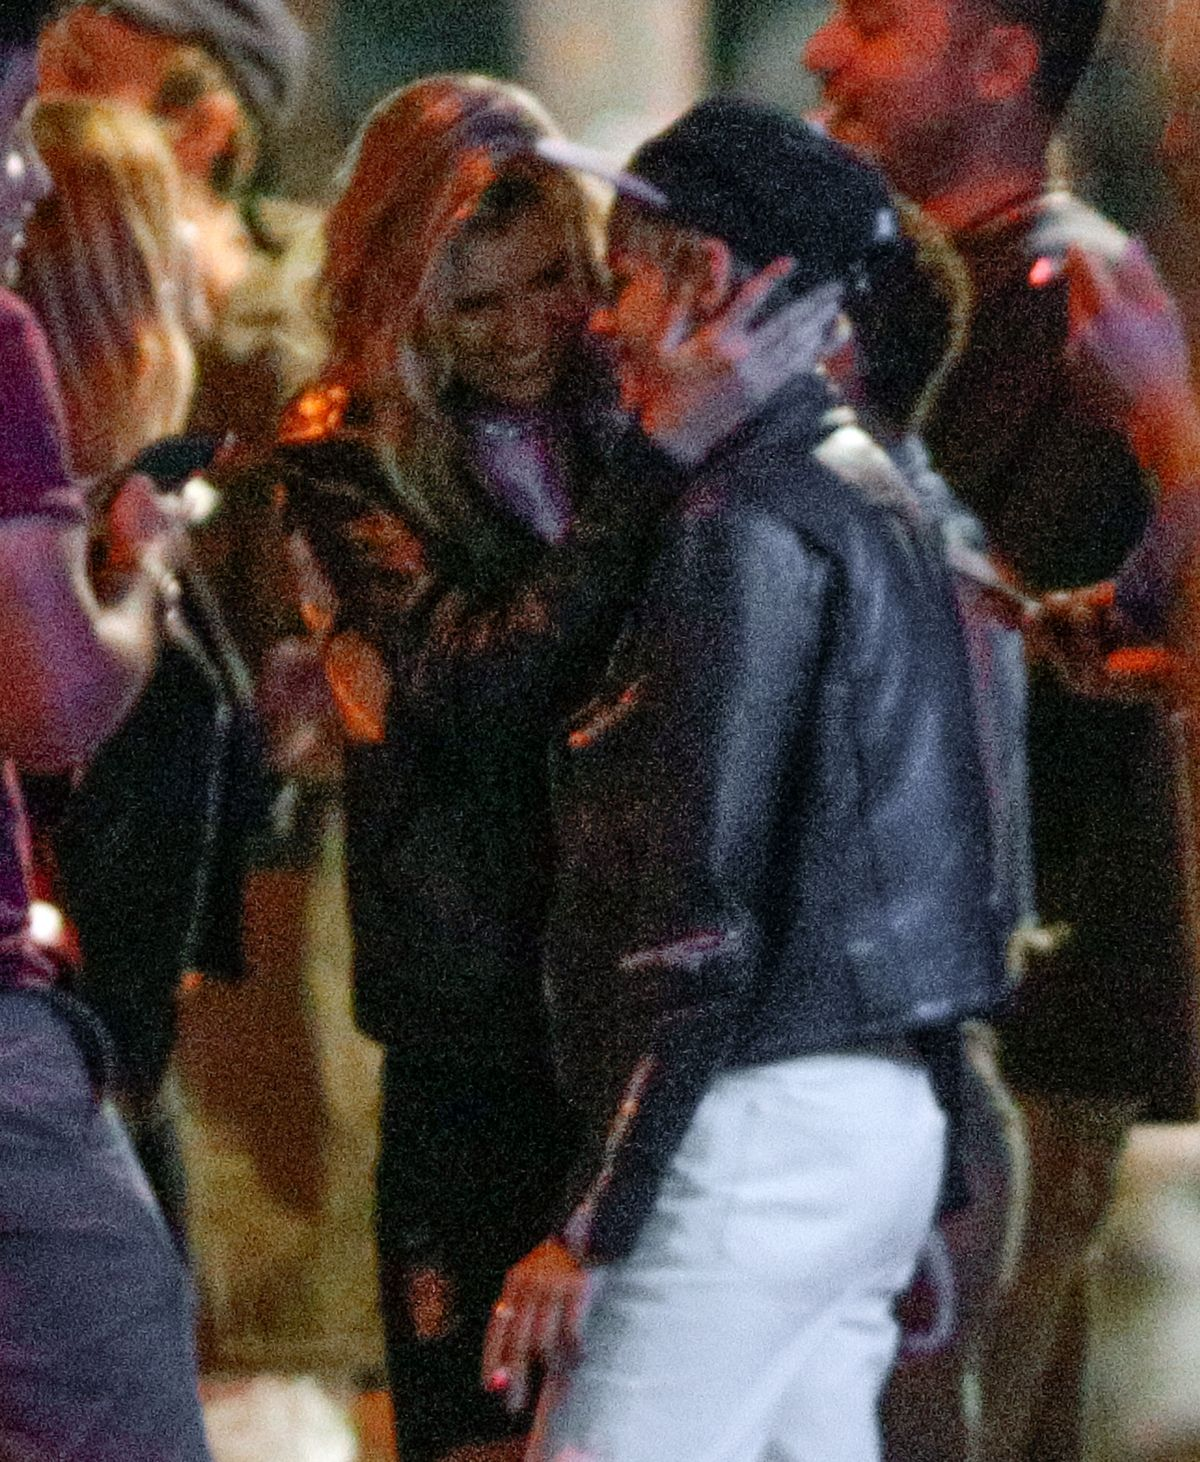 KRISTEN STEWART and STELLA MAXWELL Gets Affectionate Outside a Bar in New York 08/31/2017